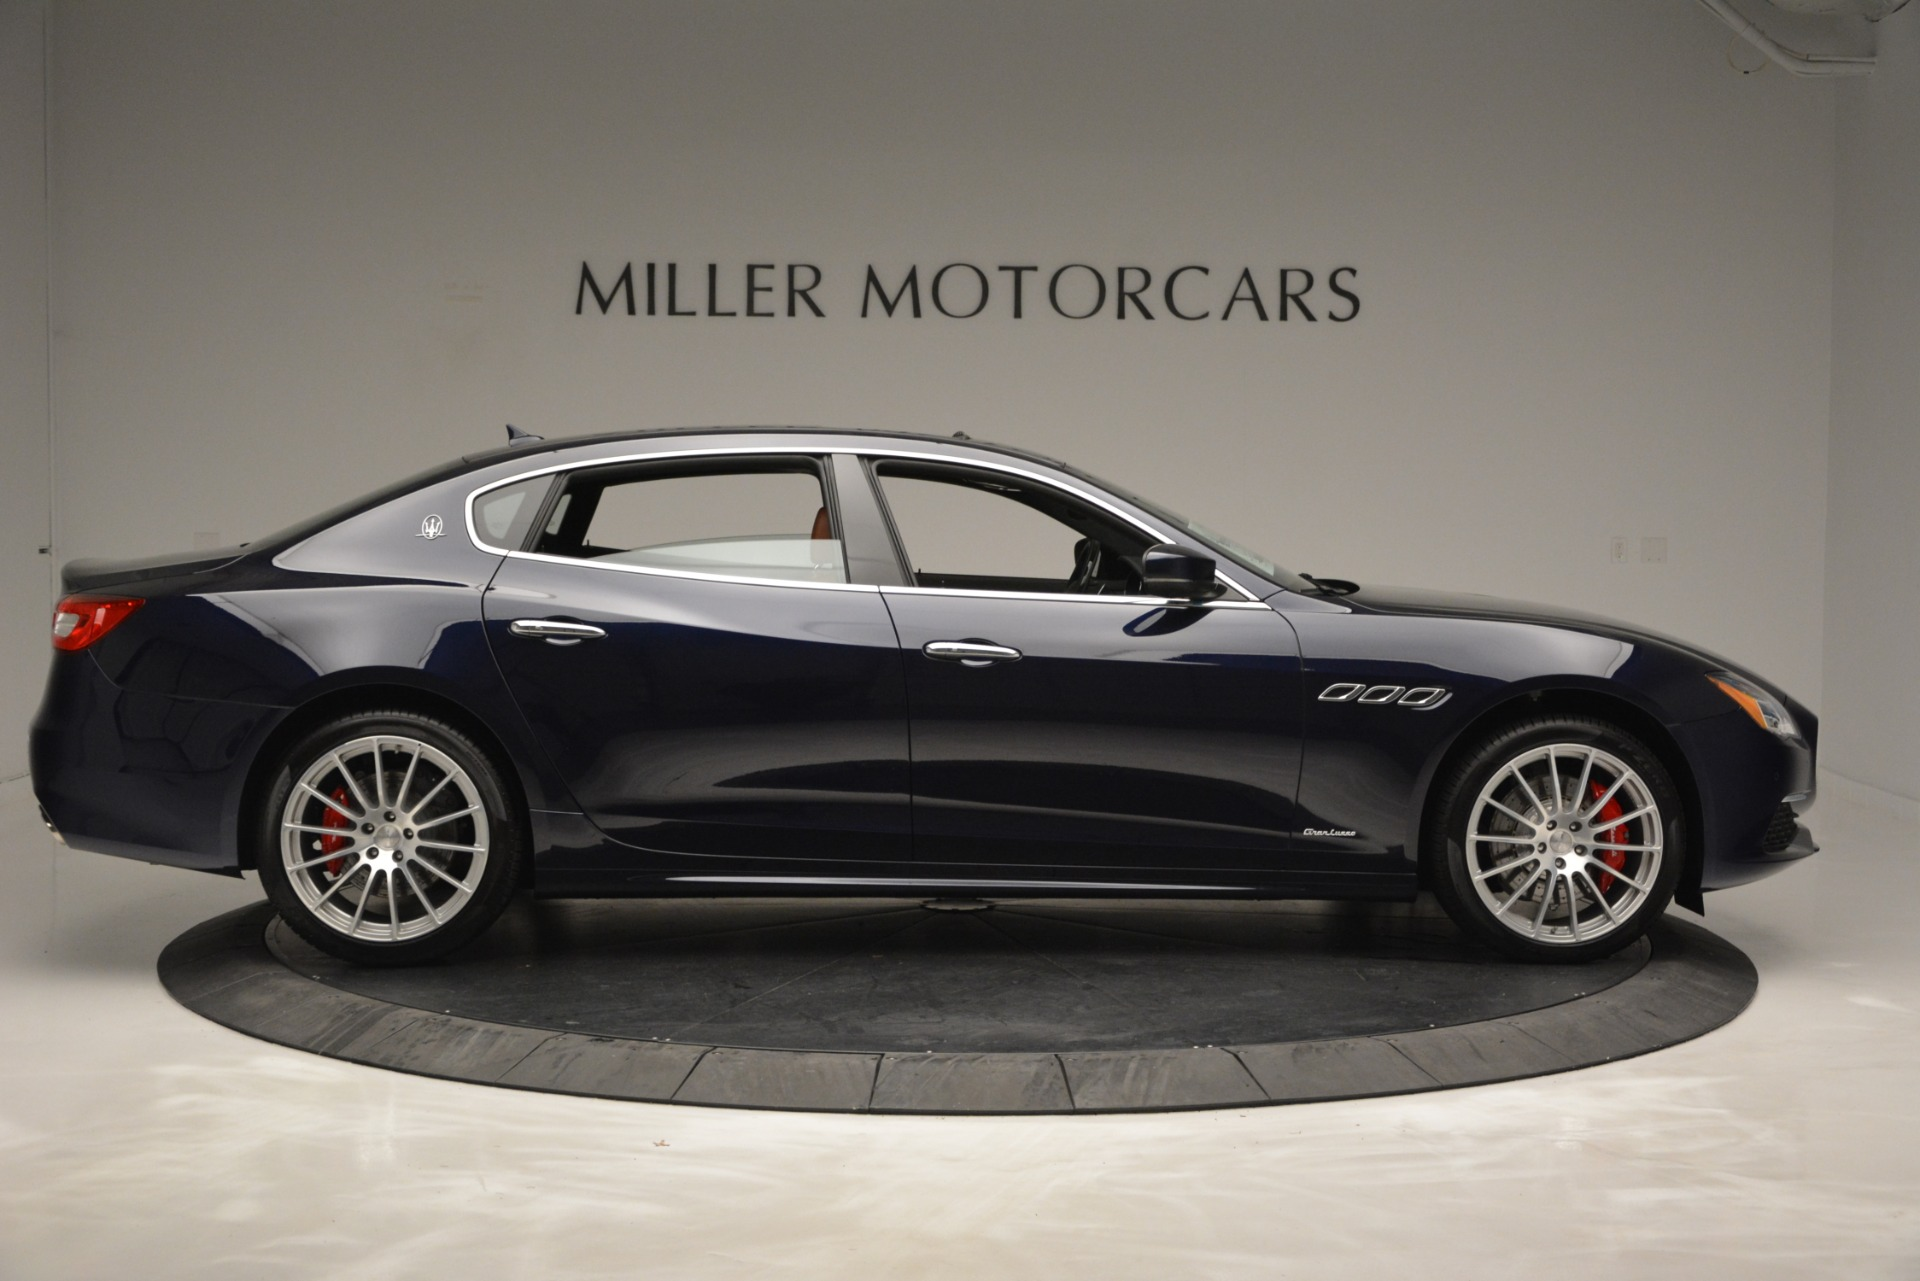 New 2019 Maserati Quattroporte S Q4 GranLusso For Sale In Greenwich, CT 2620_p9